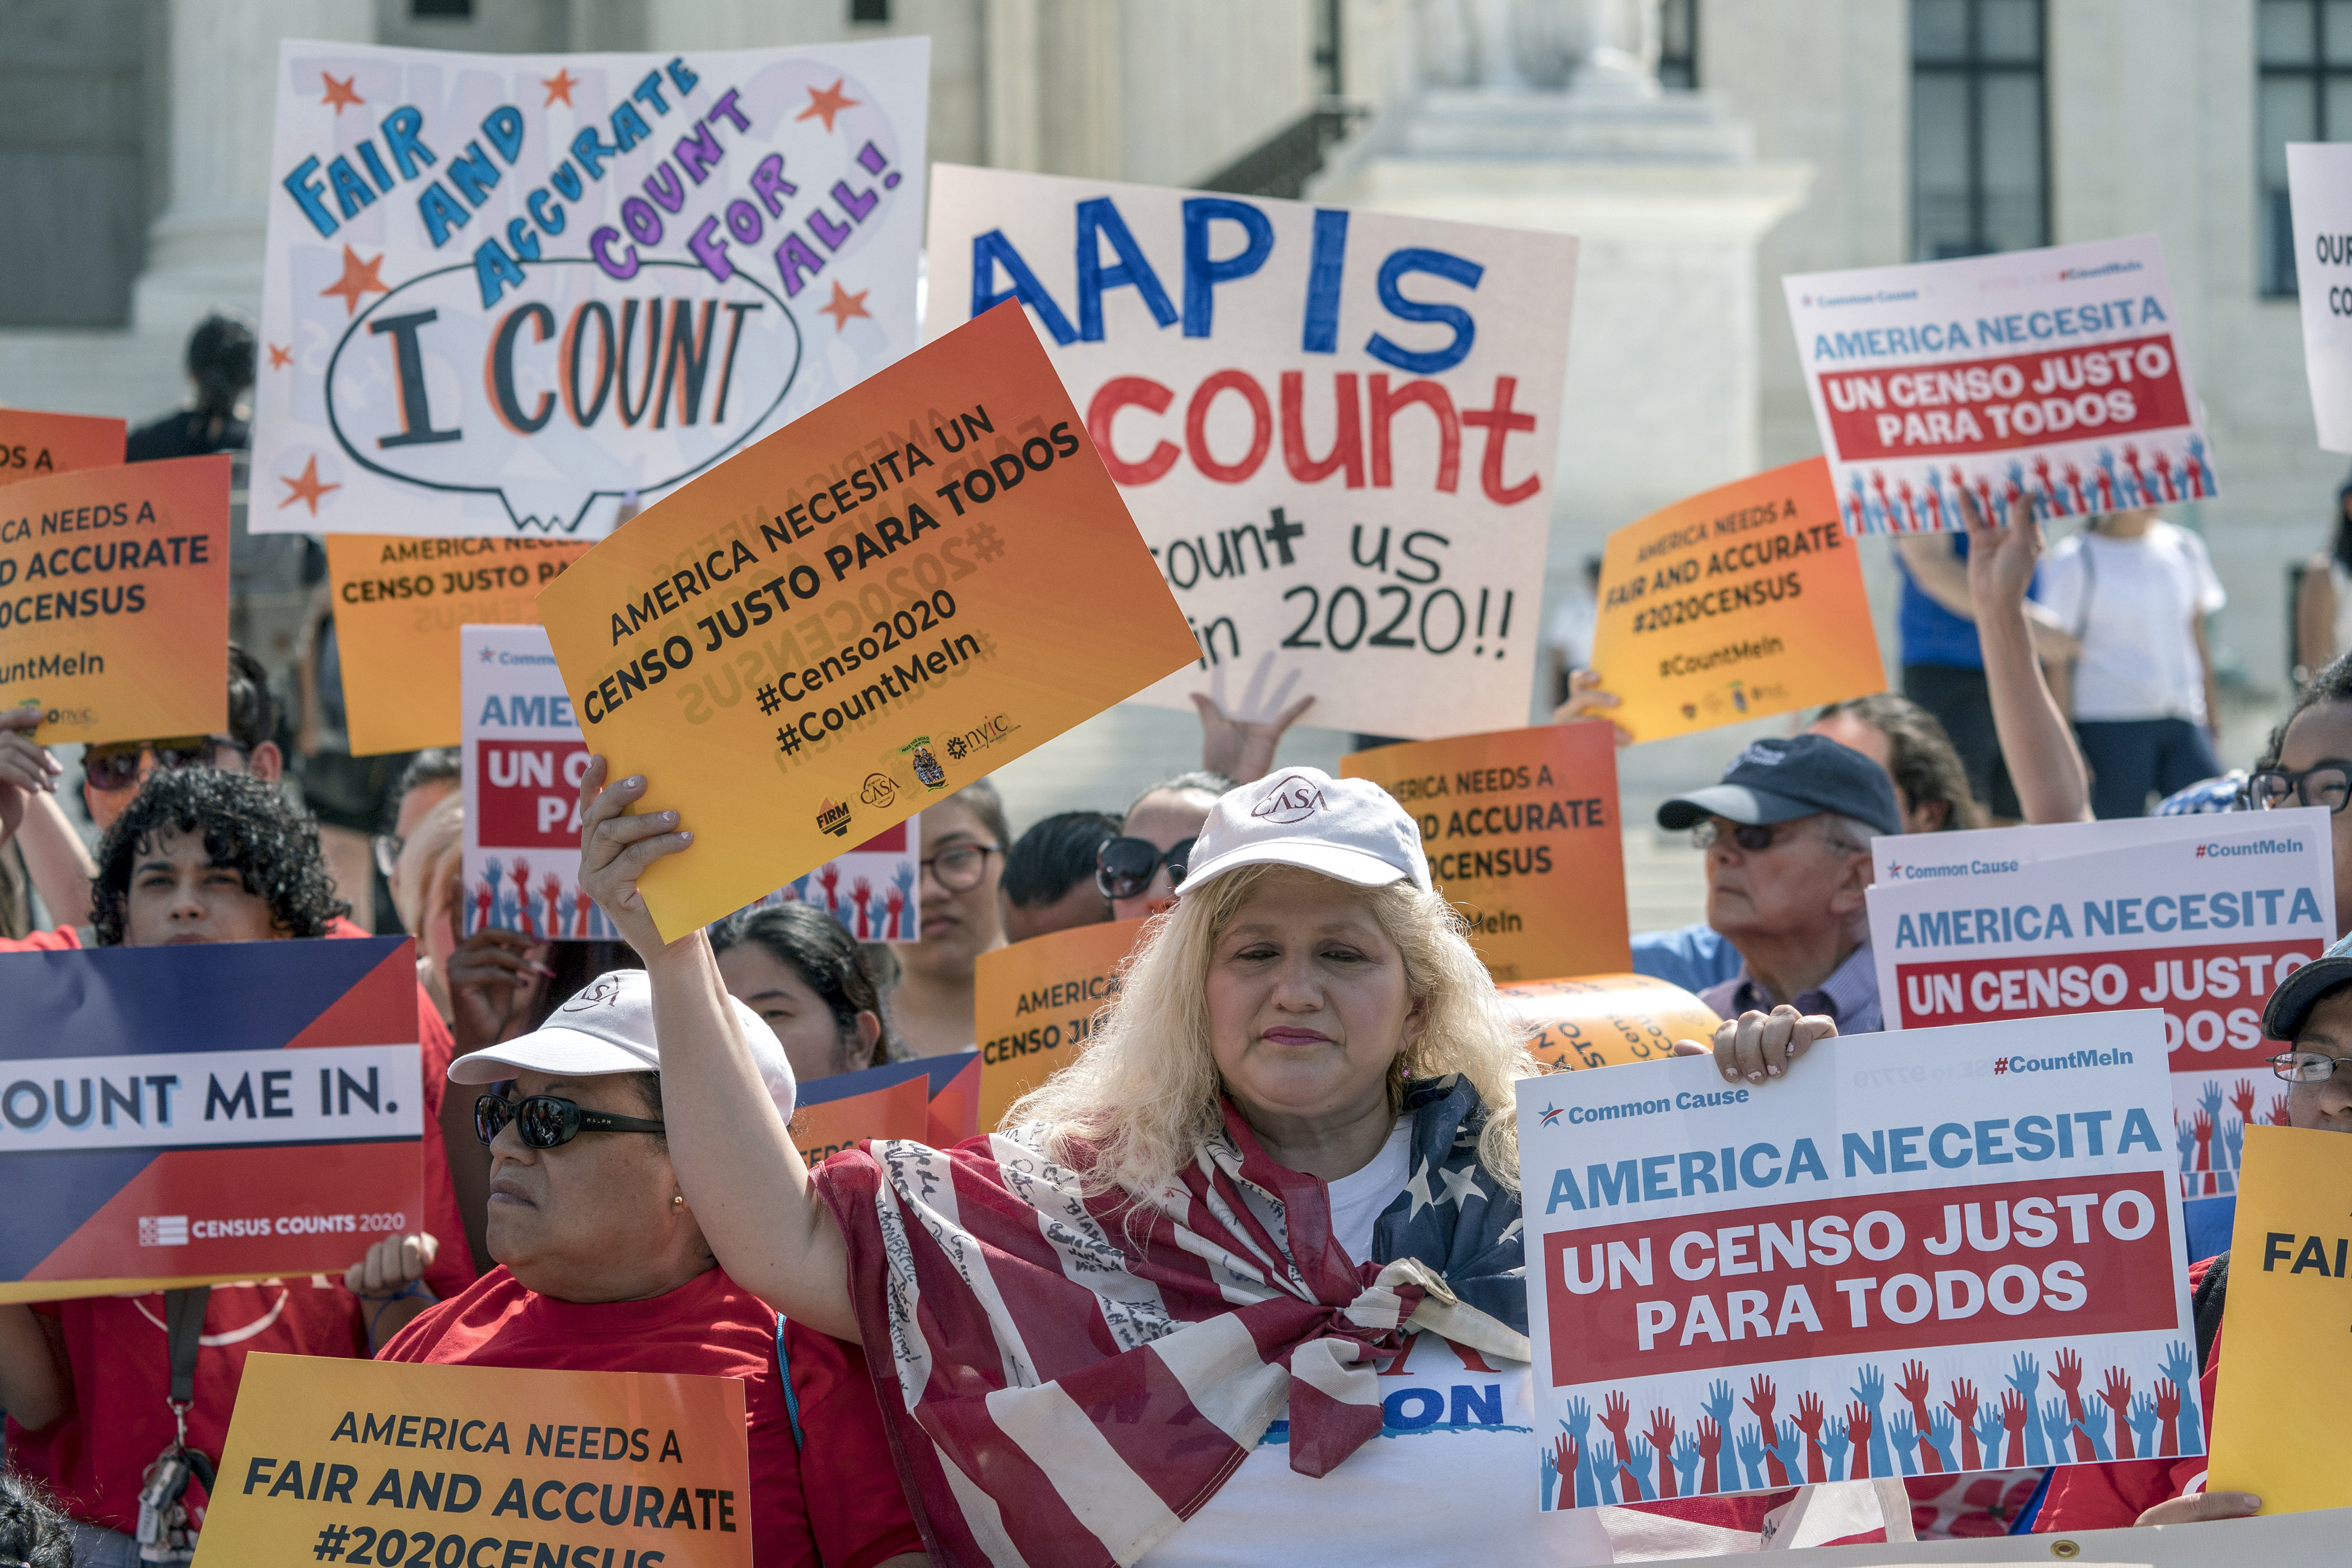 Immigration activists rally outside the Supreme Court as the justices hear arguments over the Trump administration's plan to ask about citizenship on the 2020 census, in Washington on April 23, 2019.